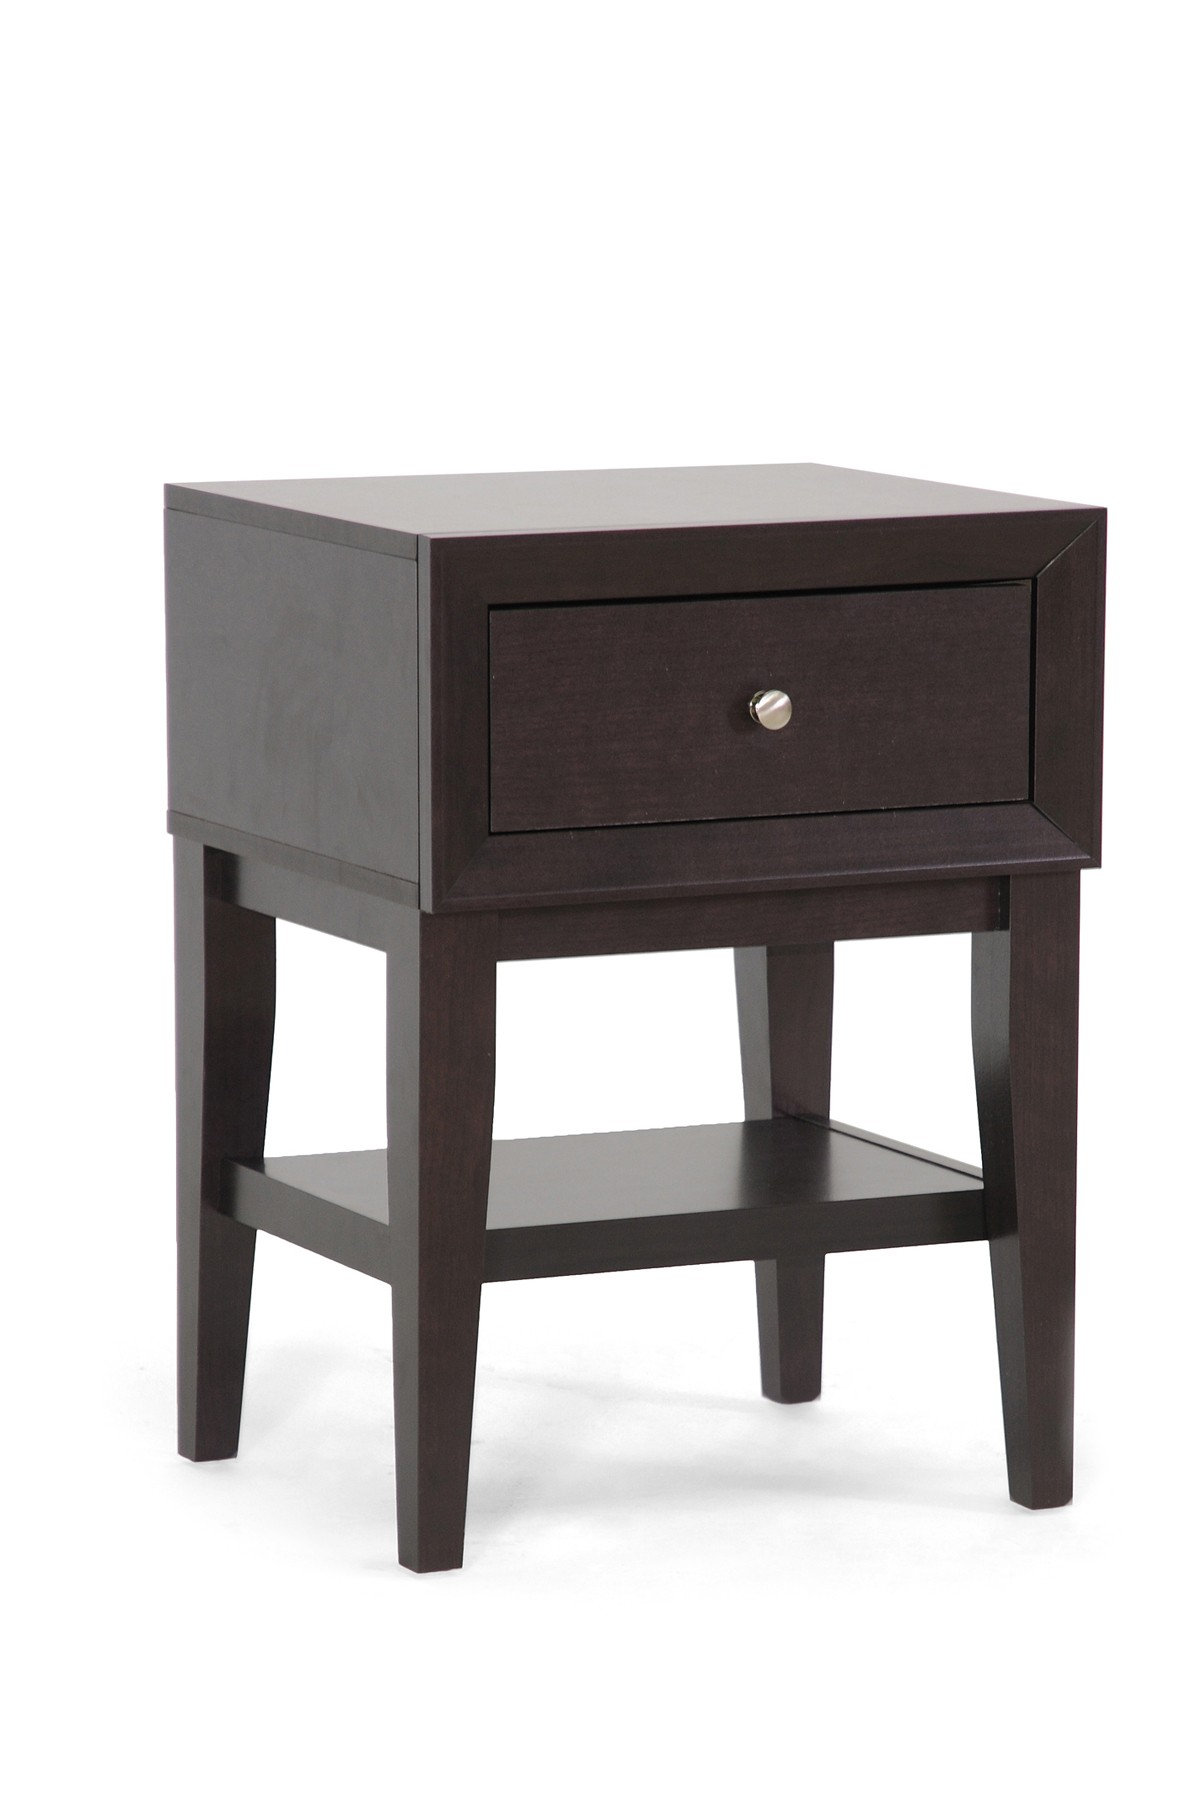 whole interiors gaston dark brown modern accent table nightstand inch legs furniture pieces blue lamp cotton napkins bar fitted nic covers black acrylic ashley chairs mirrored